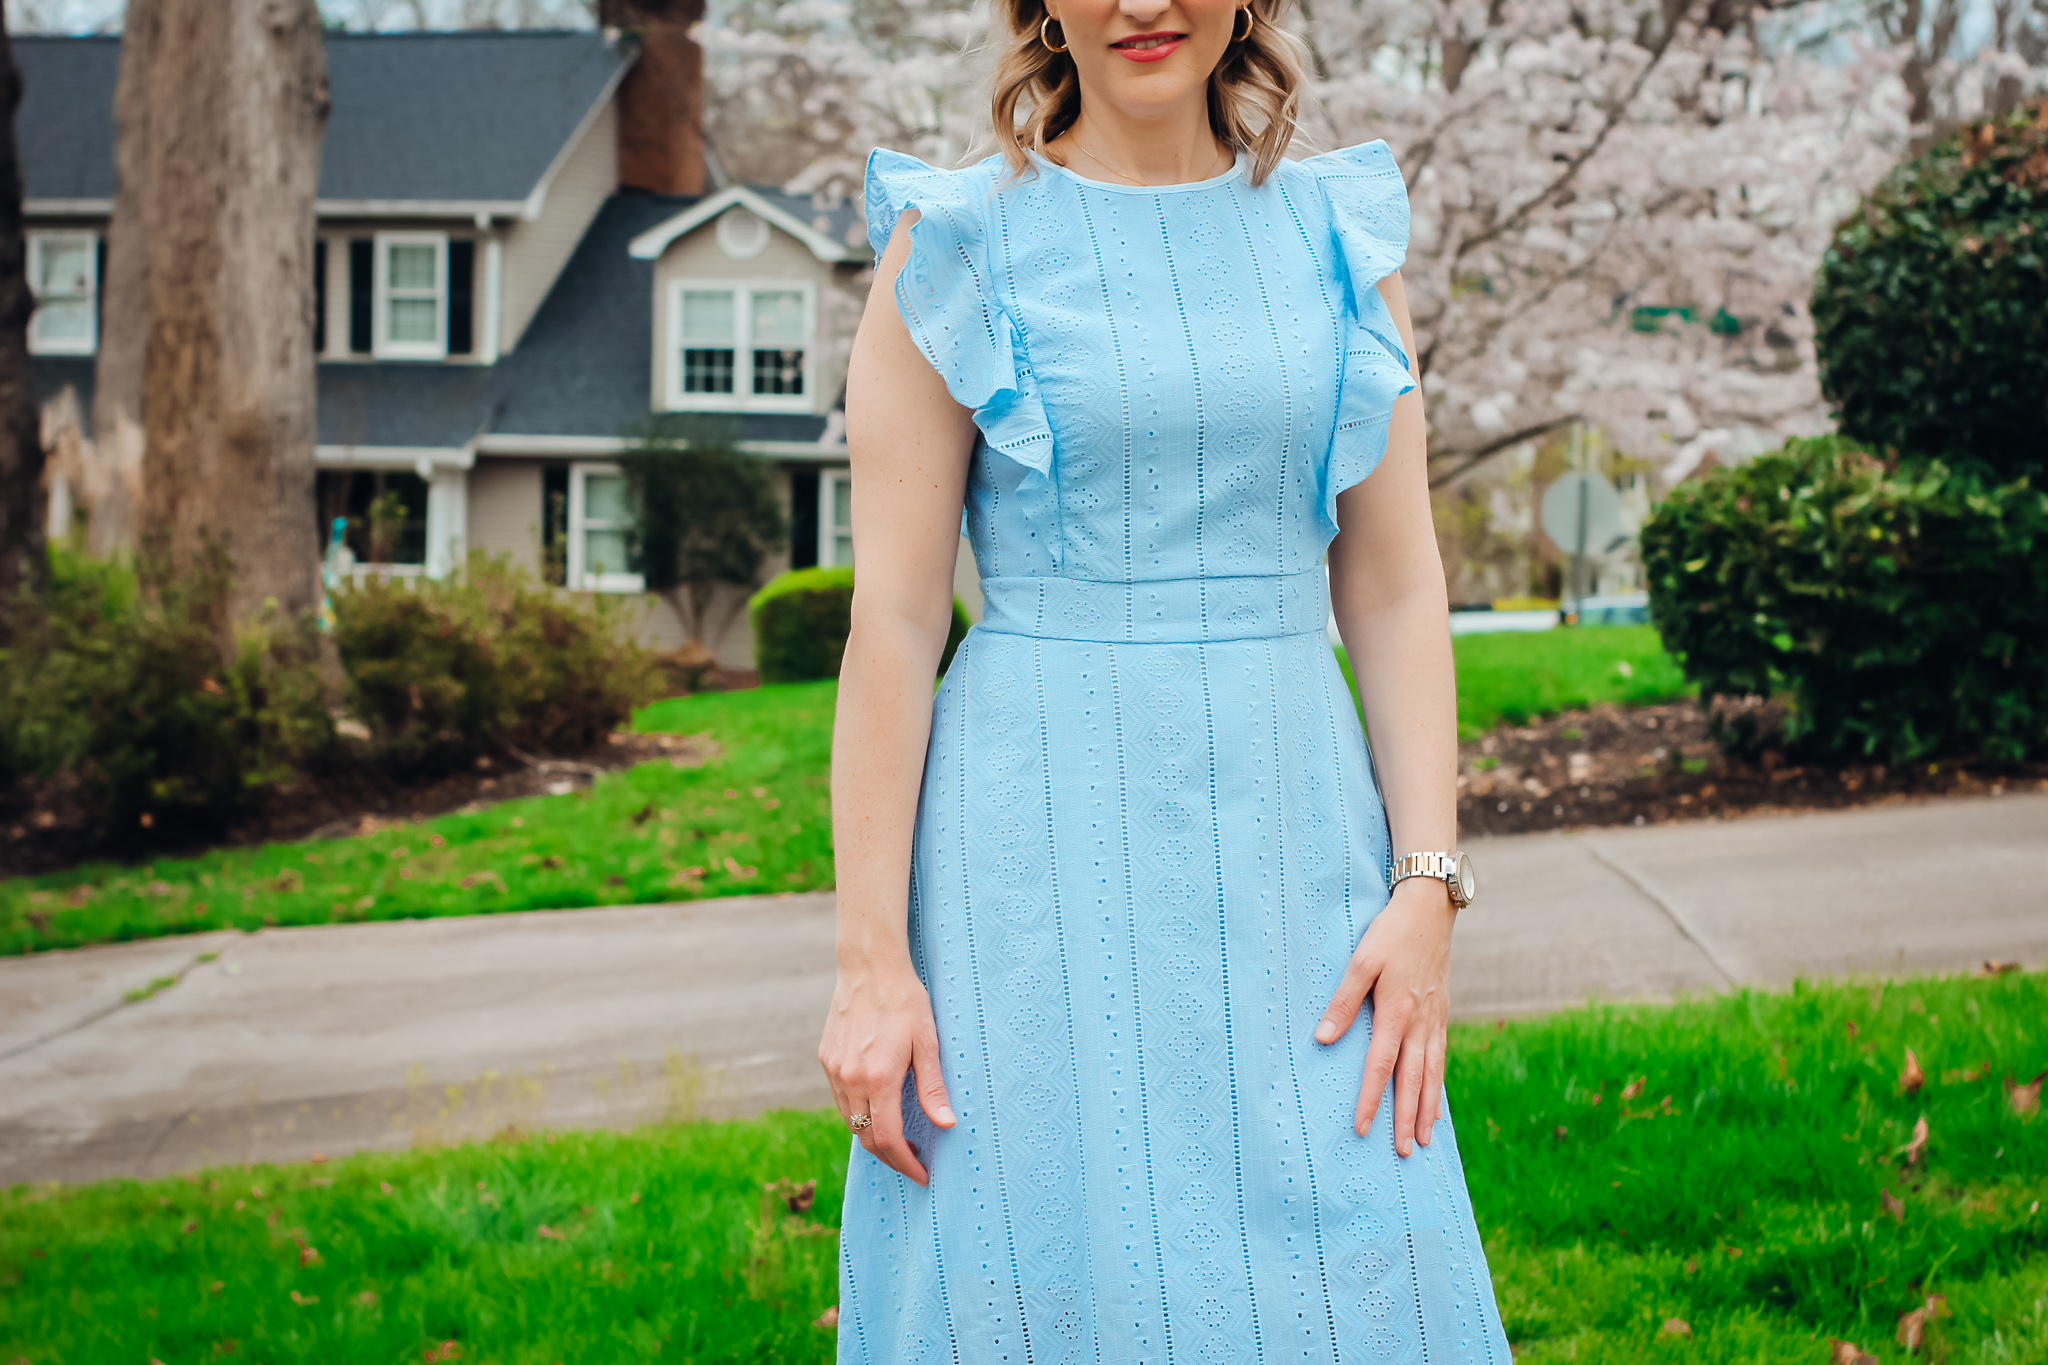 Blue Ruffle Eyelet Dress From Amazon Close Up